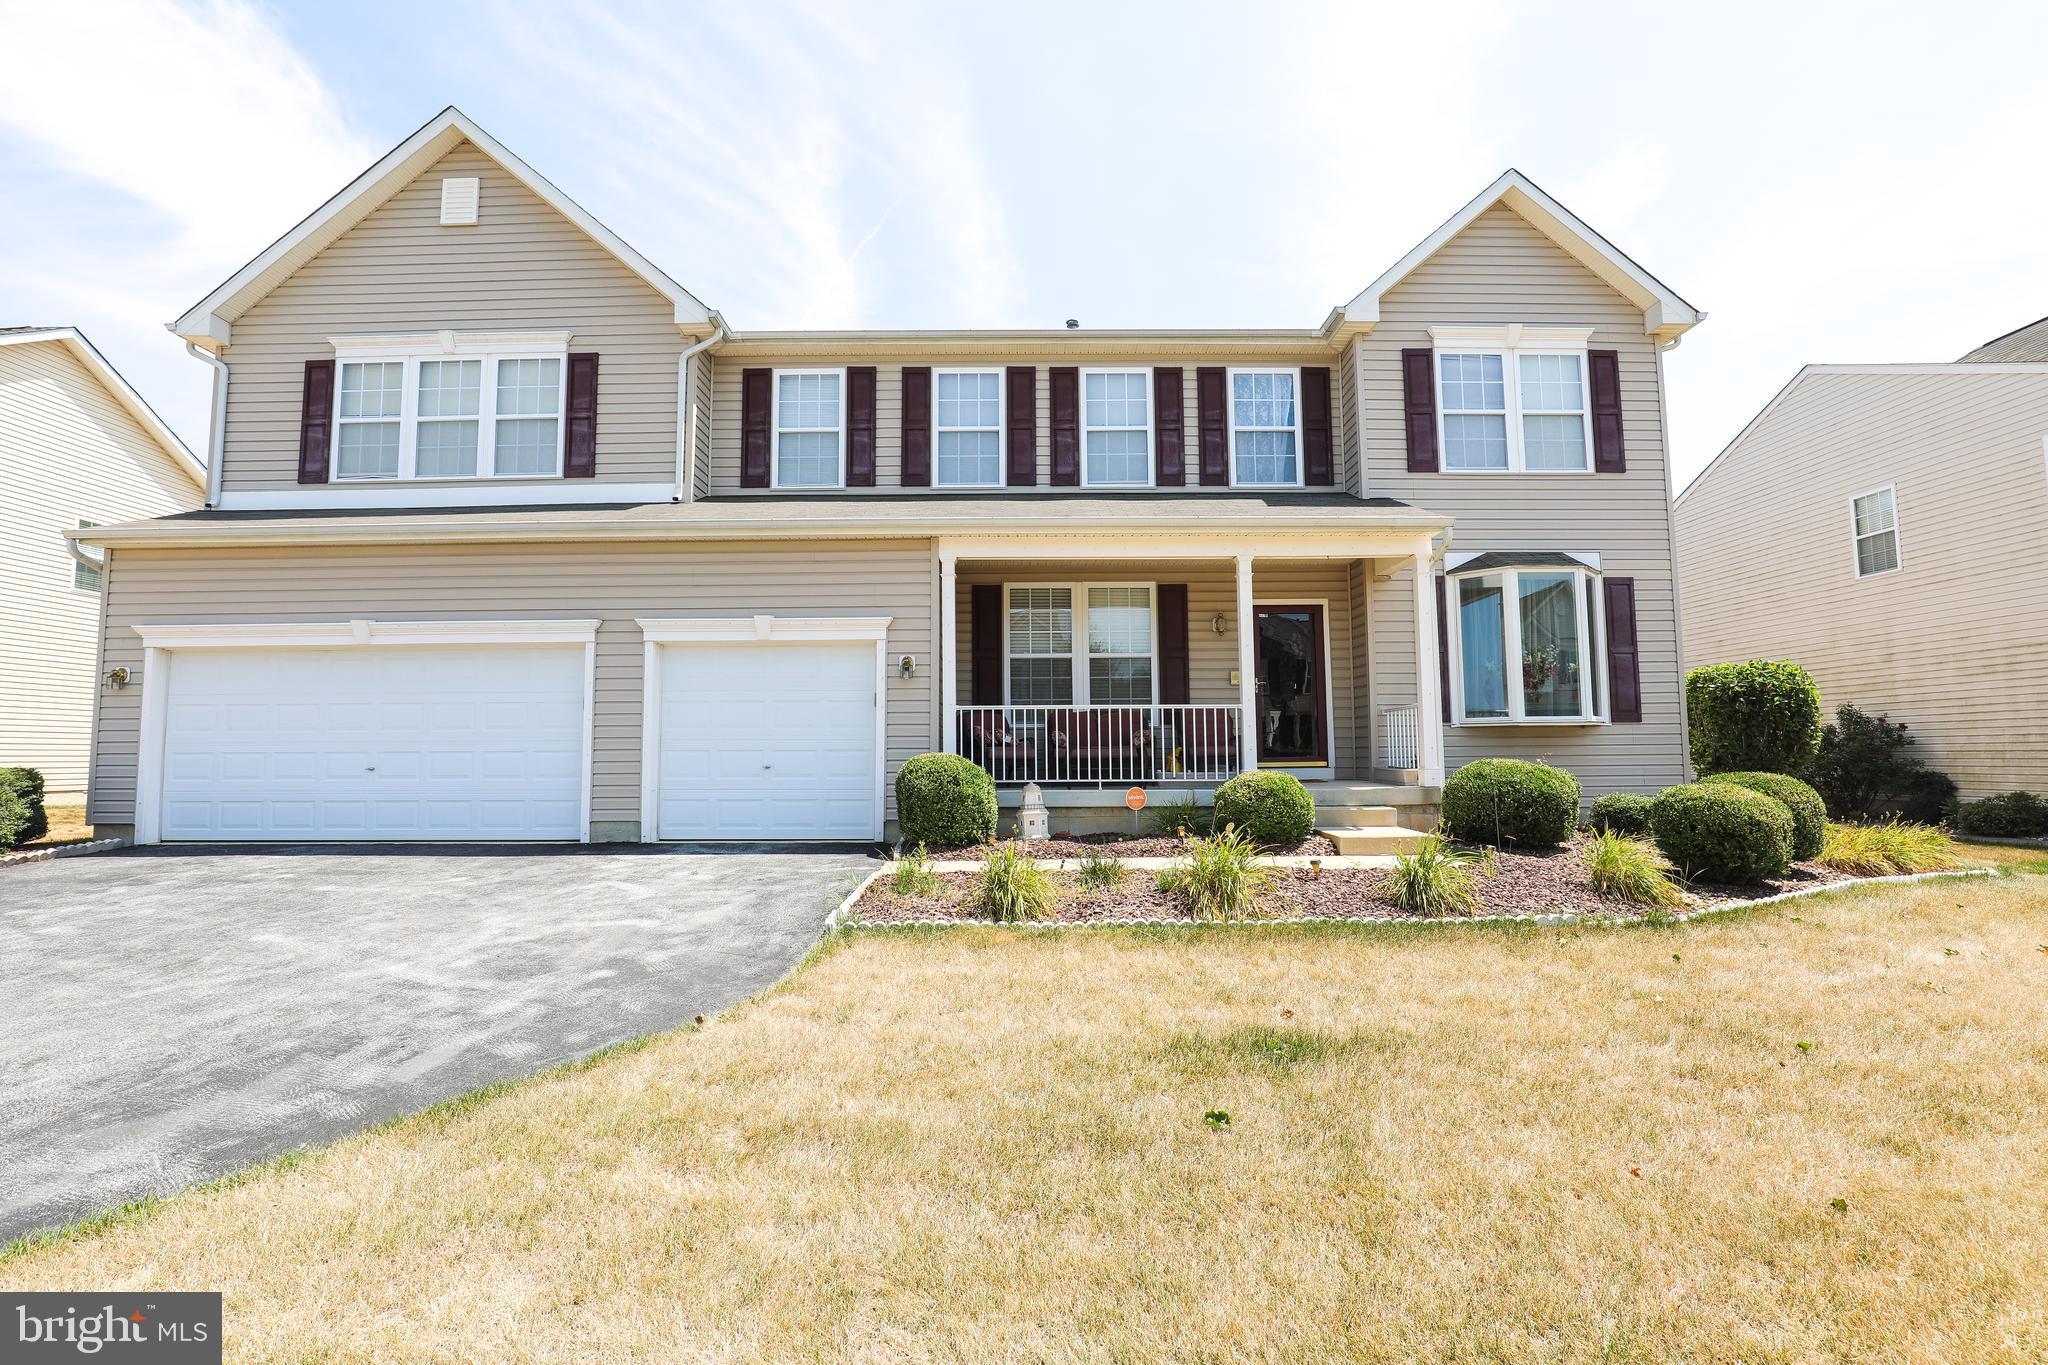 Are you ready to entertain this summer? Nestled in a quiet community, this is spectacular home with 6 bedrooms, 5.5 baths and a 3 car garage filled with over $70,000 in recent upgrades. It boasts a wonderful first floor plan featuring hard wood floors, a formal dining room, living room, and an eat in kitchen. The kitchen boasts a large island, 42in cabinets, and ample storage. The family room has a gas fireplace to use during those cool nights. There is an enormous loft upstairs that is currently being used as an additional entertainment space. The master bedroom has 2 walk-in closets and a sitting area. Owners retreat features an oversized walk in closet, large garden tub with whirlpool jets, master bath has upgraded ceramic tile. Very spacious bedrooms are also located upstairs and all are equipped with walk-in closets and laundry on second floor. Finished basement adds over 1,000 additional square footage, including a basement walkout to secluded backyard that backs to trees. For your entertainment the lower level has a finished recreational room/den. That backyard boasts a shed and gazebo, and deck ready for summer entertainment. This is truly an entertainer~s dream home and it won't last long, so schedule your appointment today!